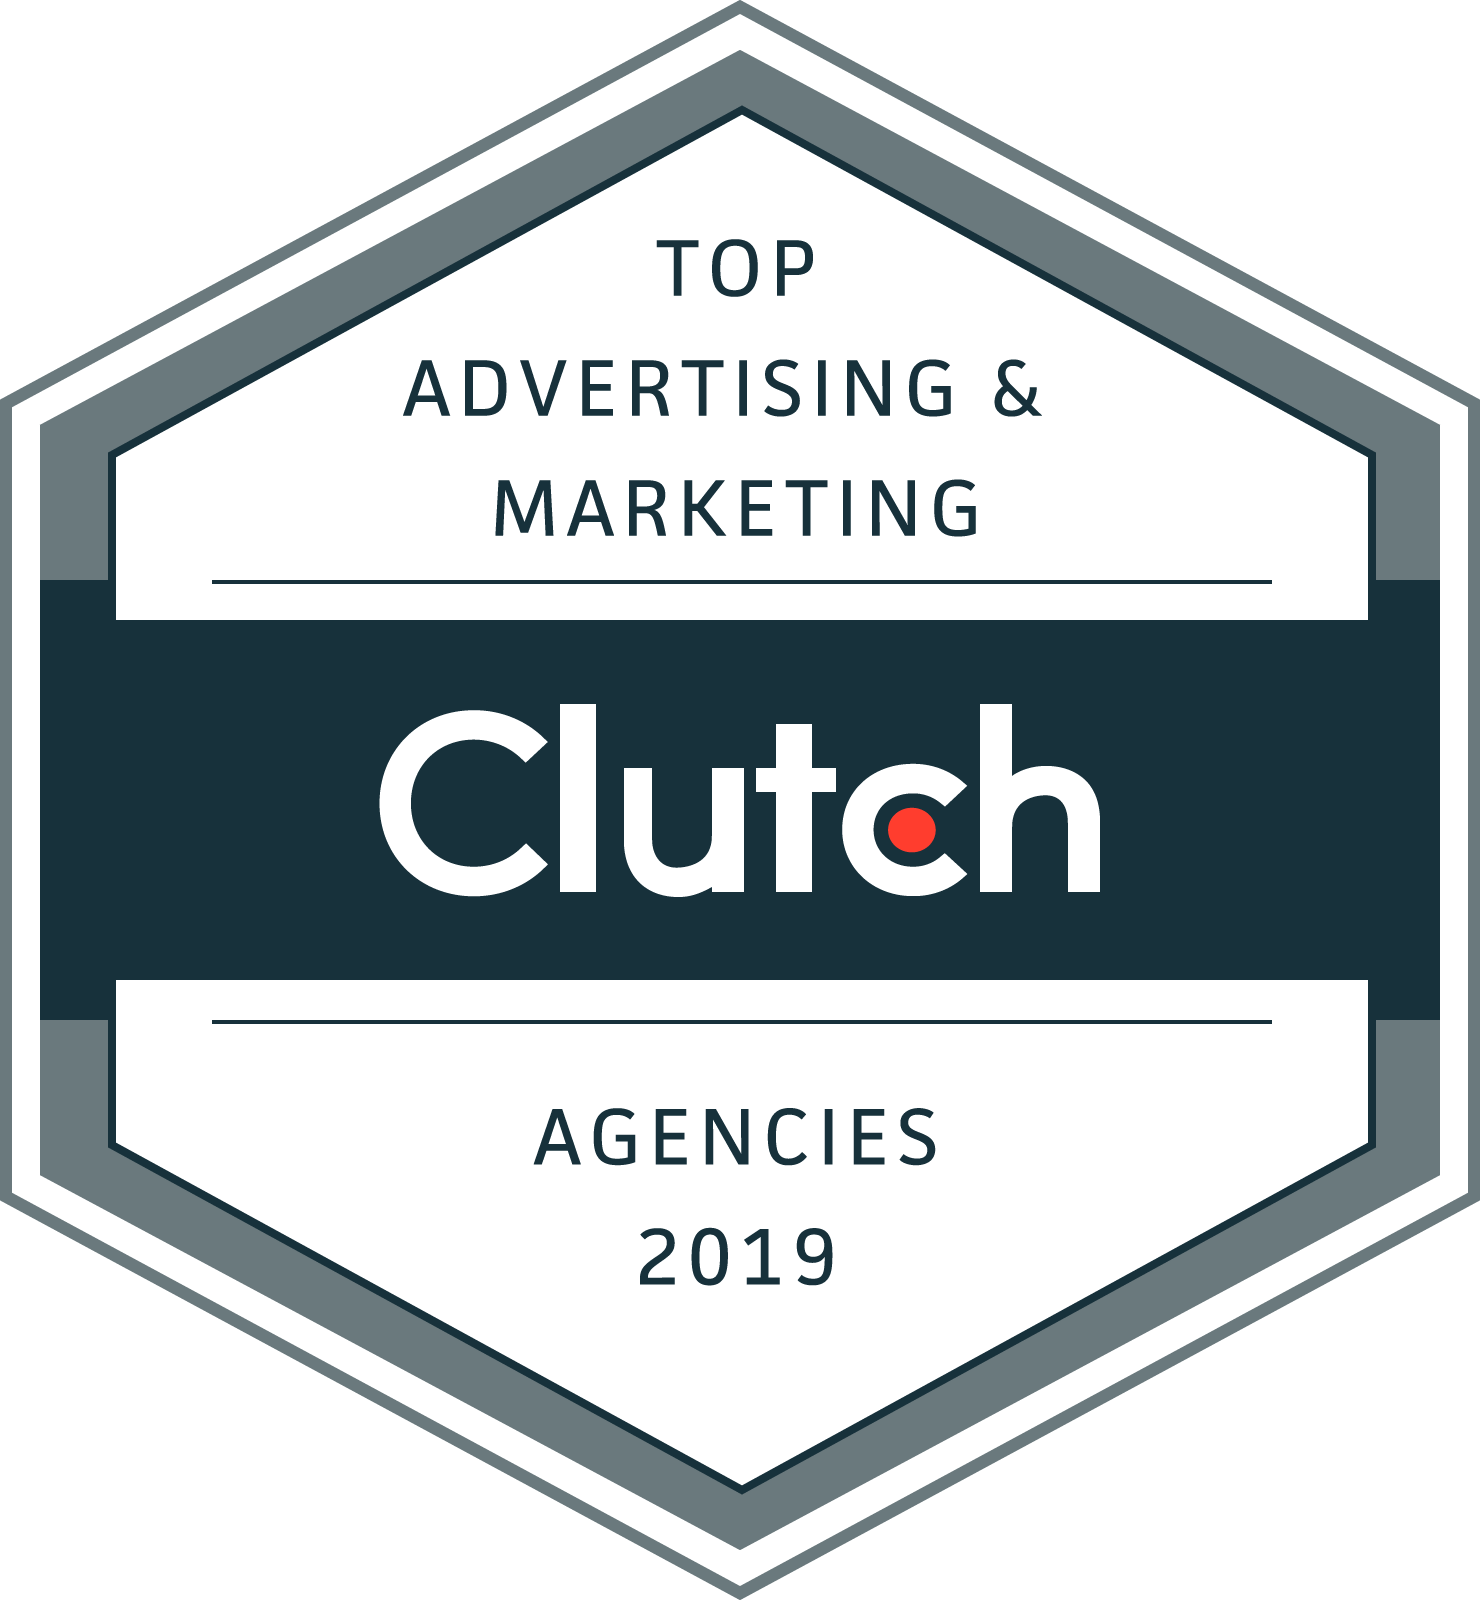 Clutch Top Advertising & Marketing Agencies 2019 Badge